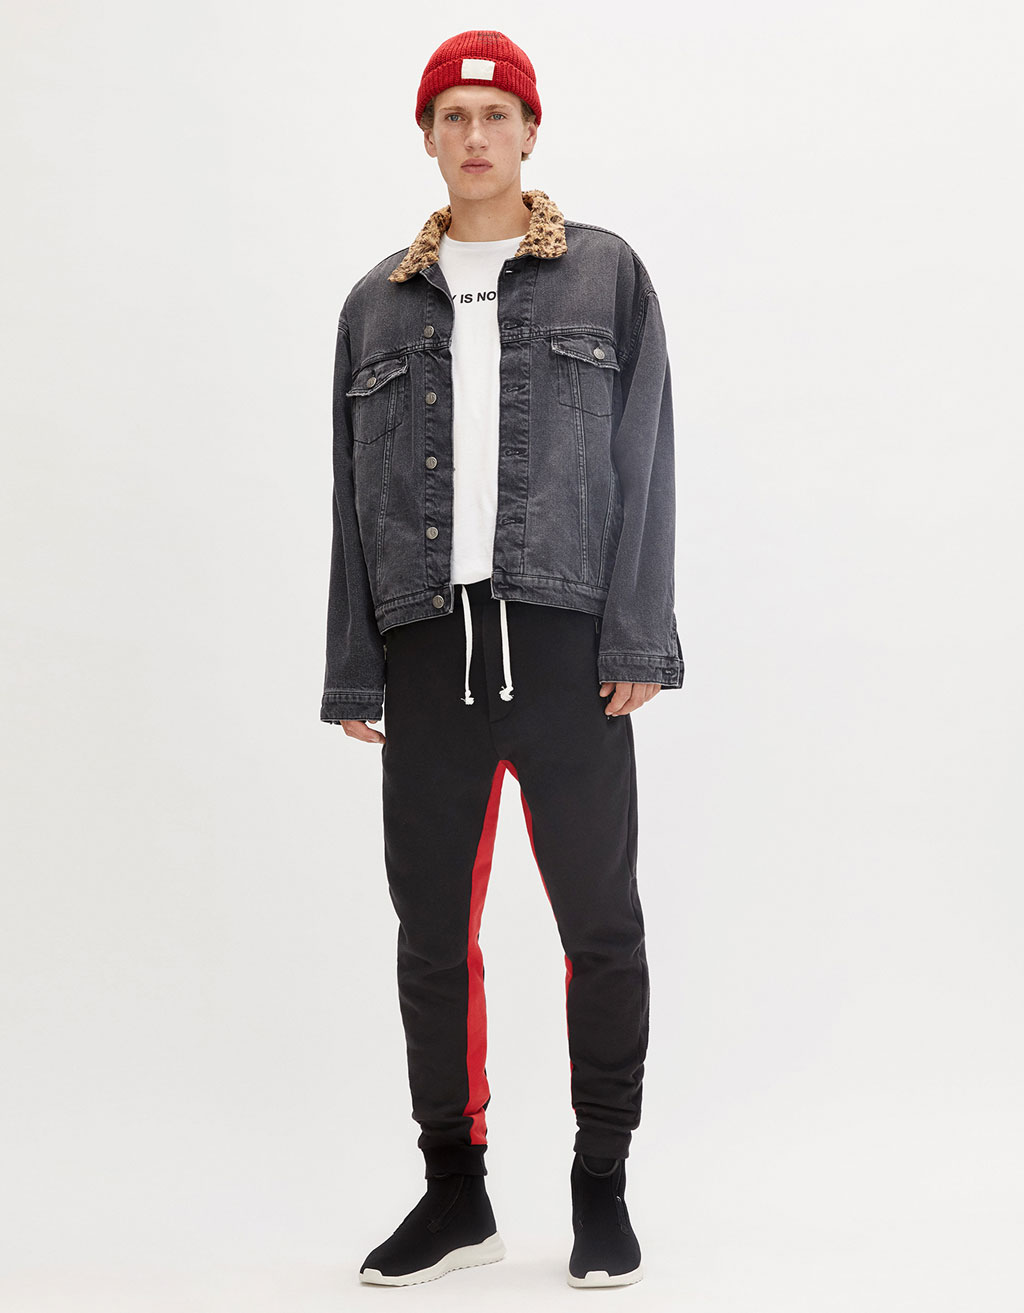 Technical pants with red stripes